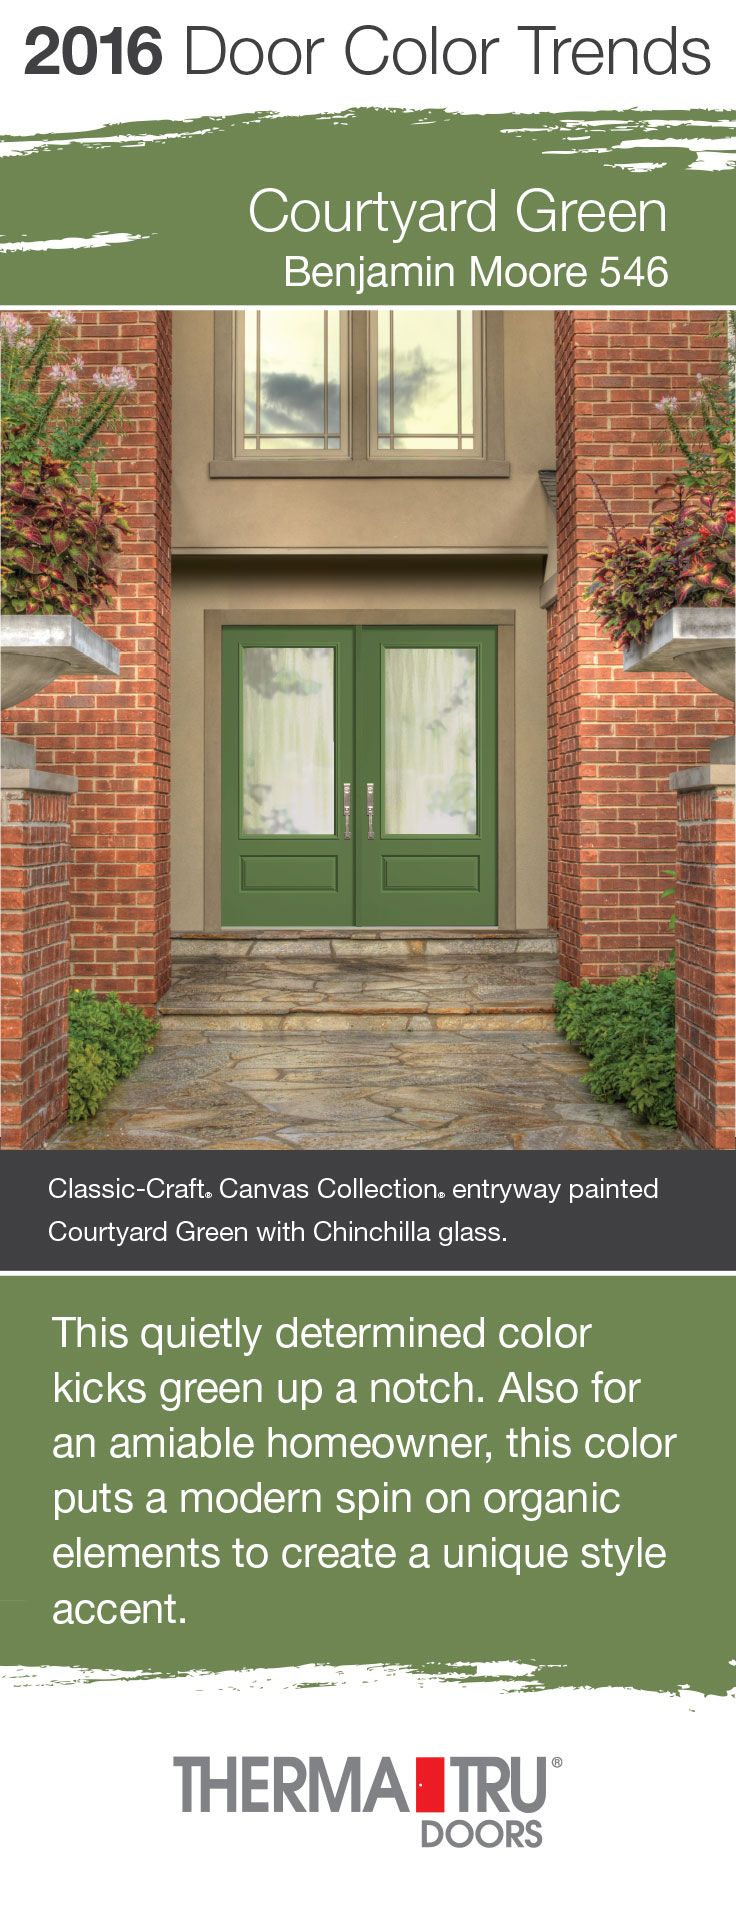 35 best 2016 Front Door Color Trends images on Pinterest | Color ...